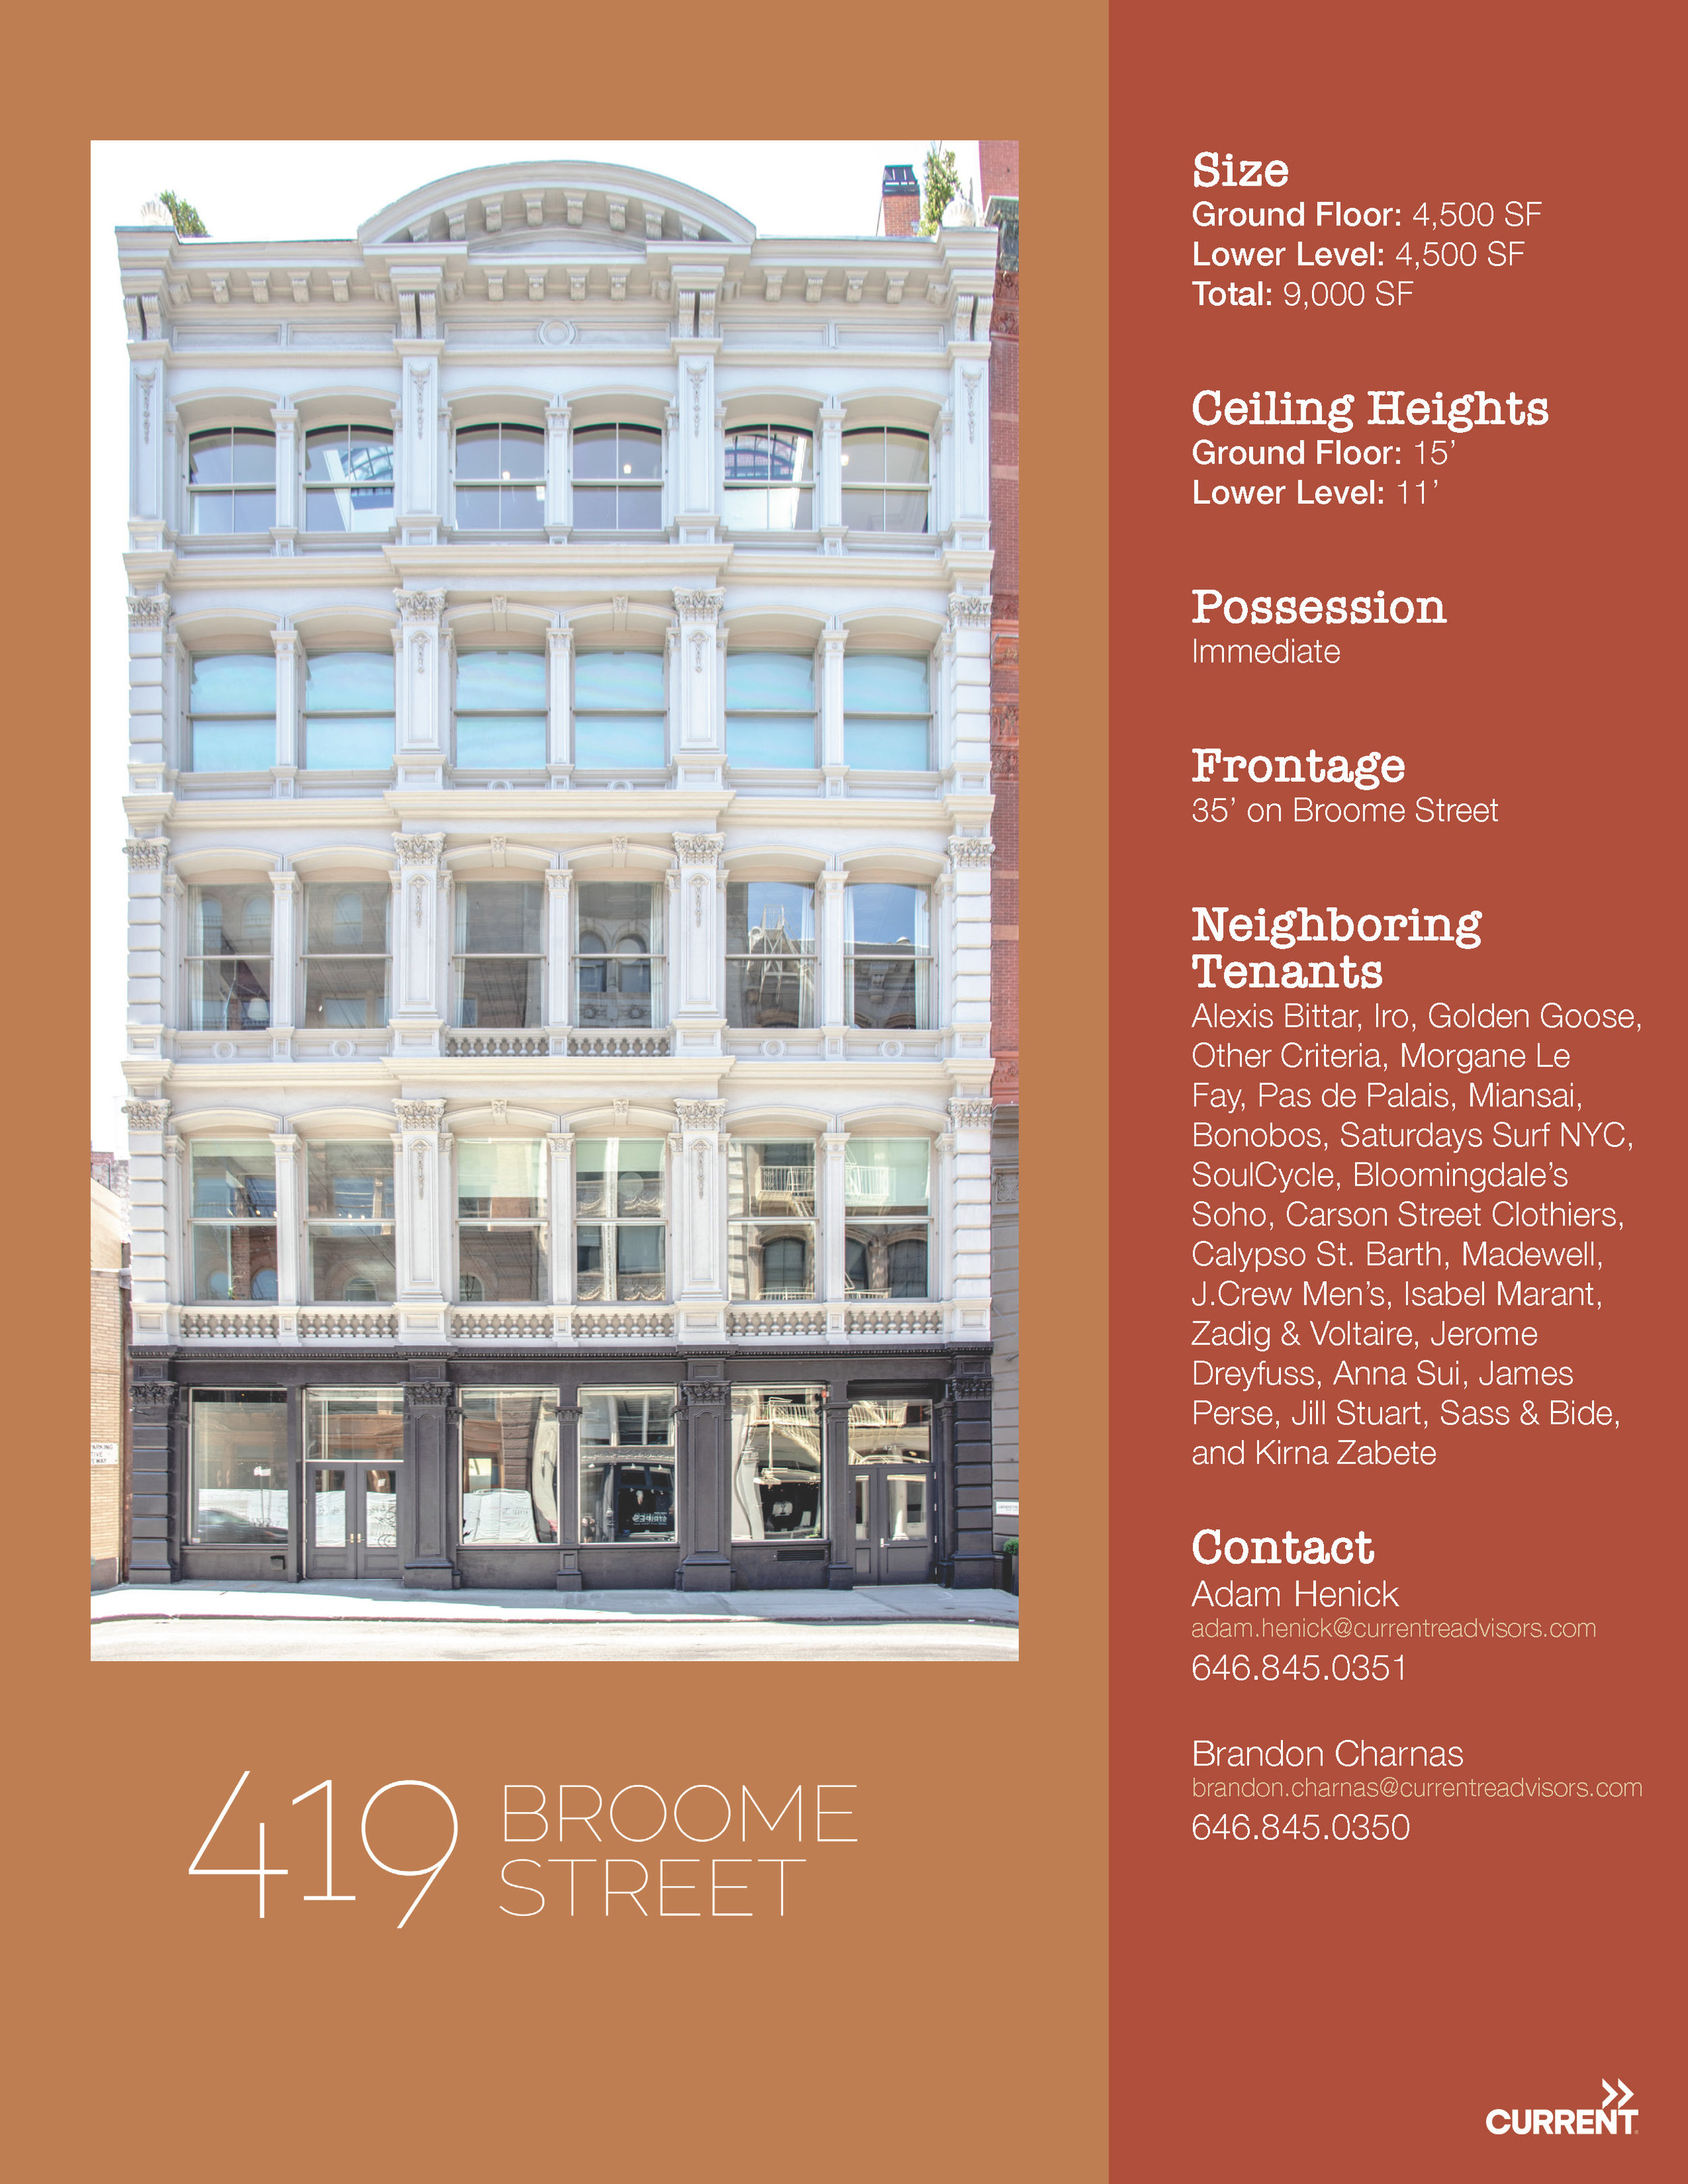 419 Broome Street Current Brochure_Page_2.jpg